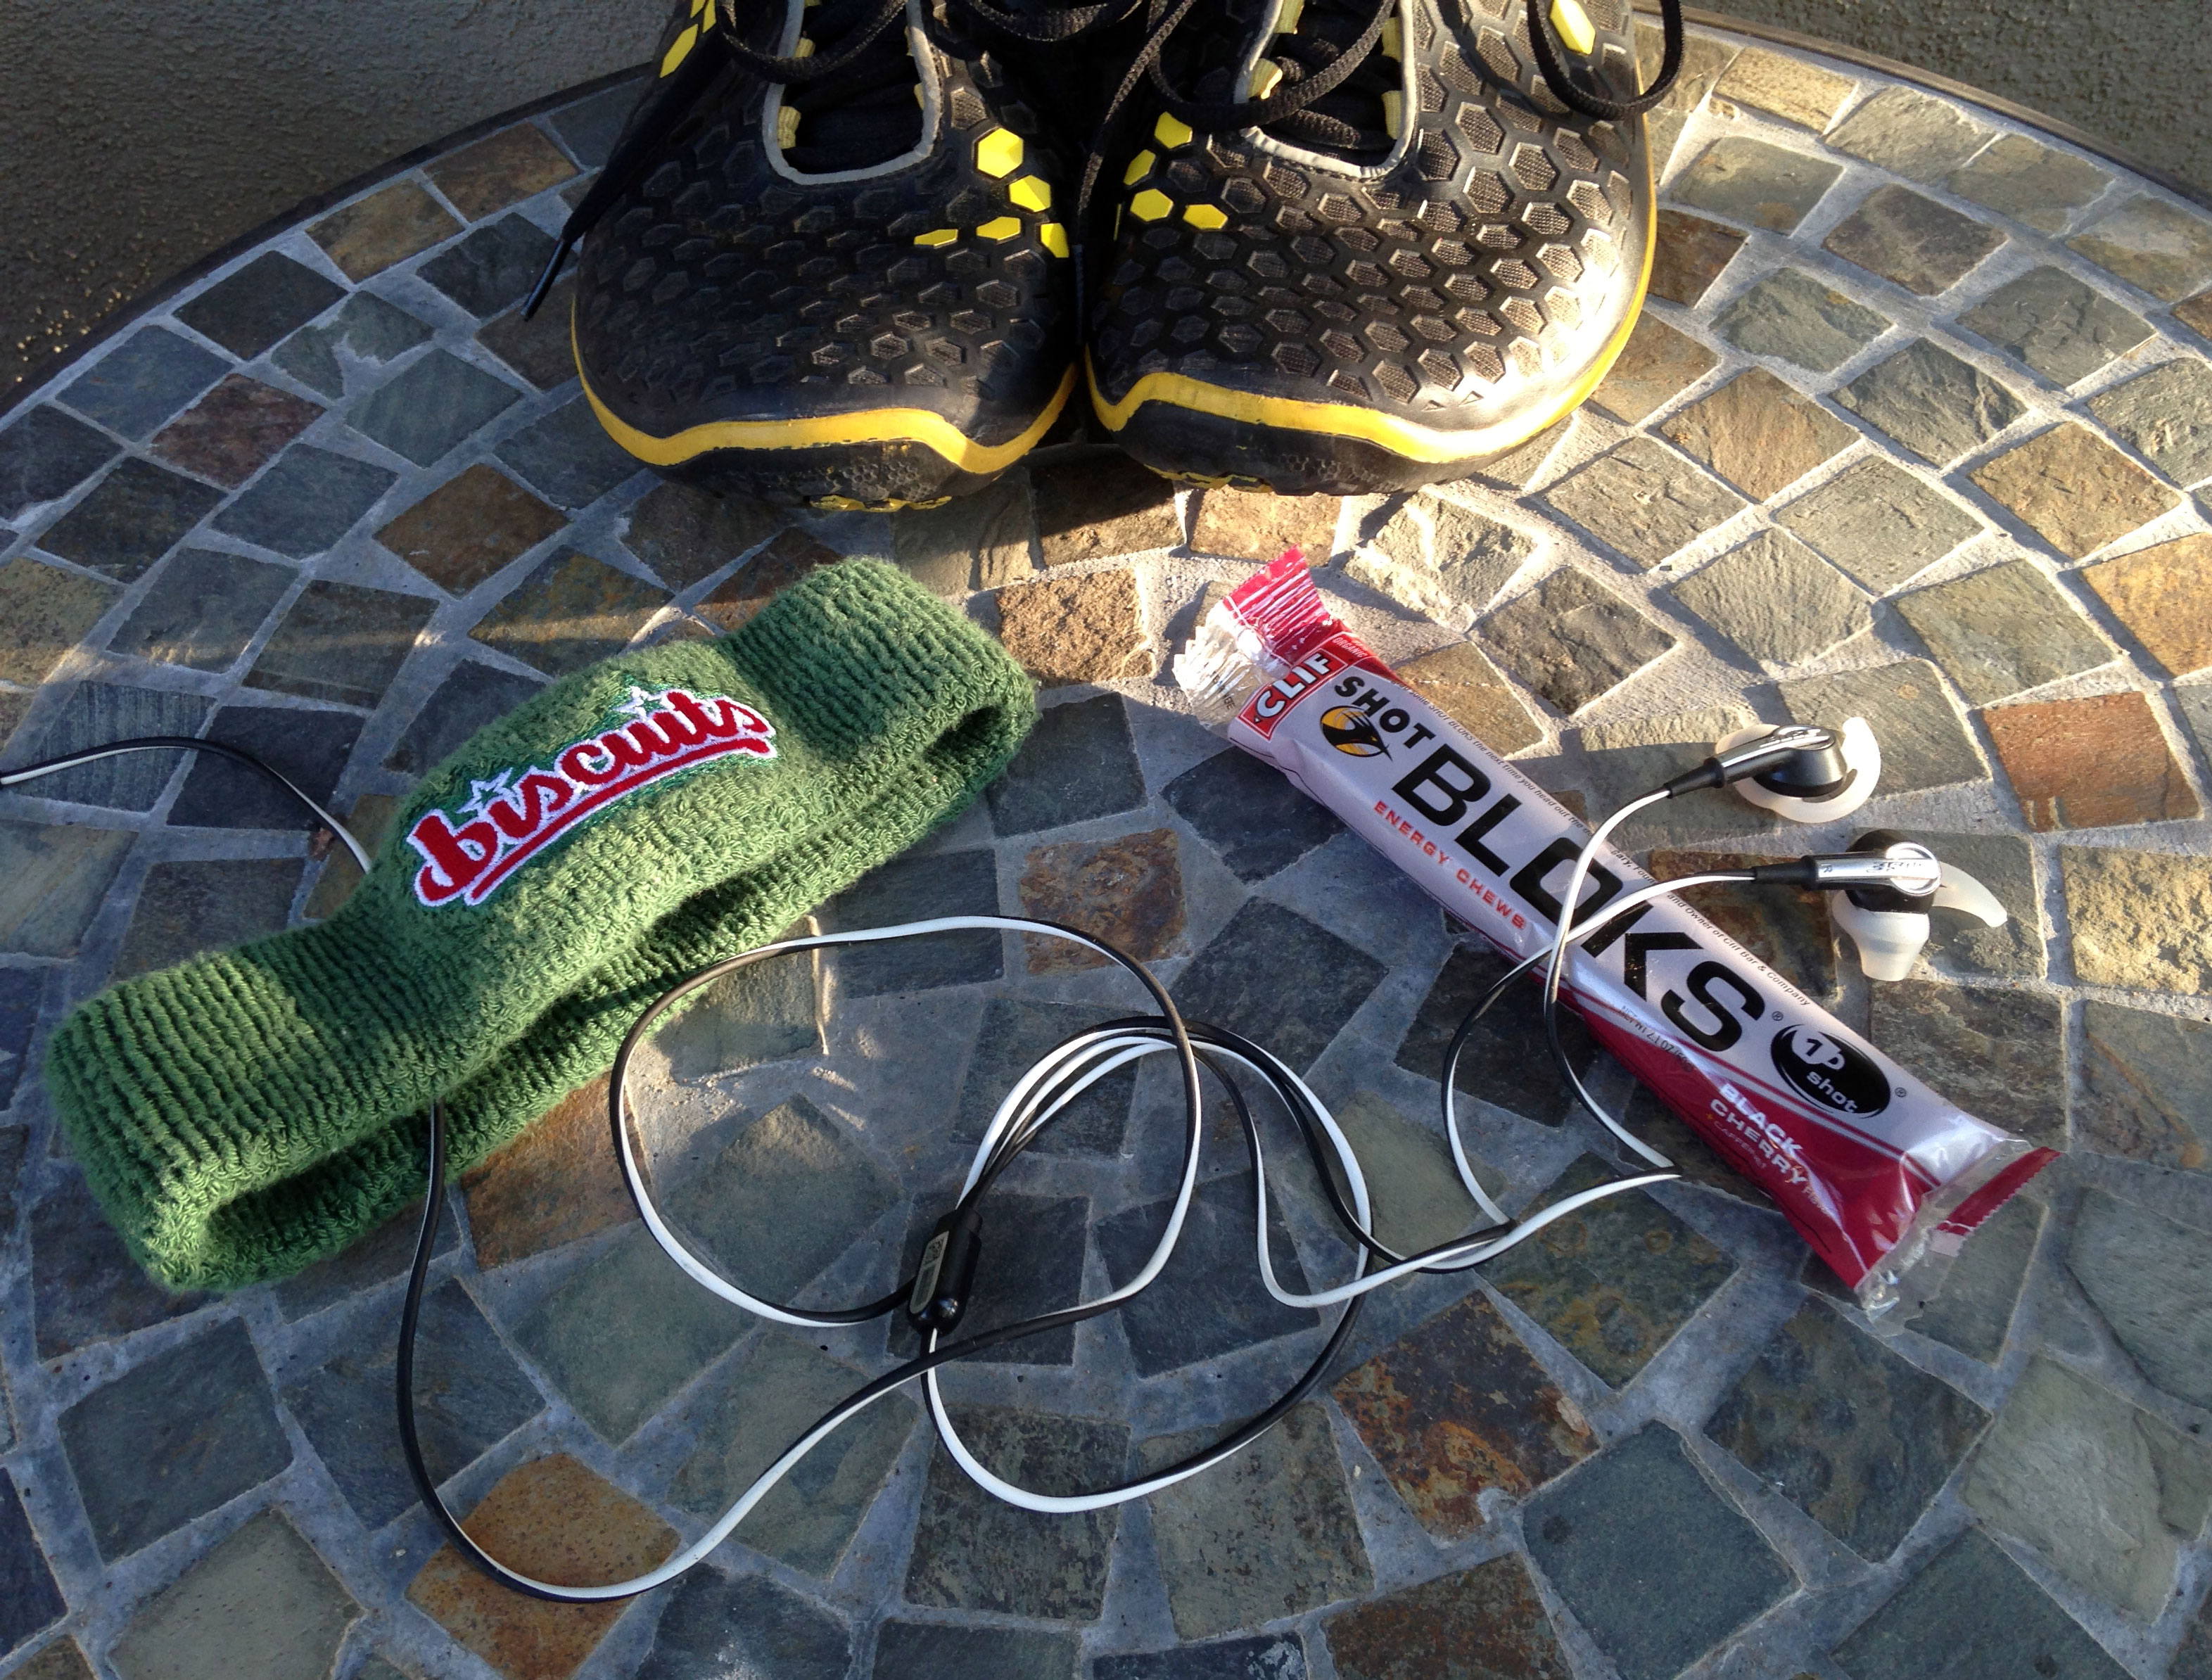 My running shoes, sweat band, Bose earplugs, and energy gels